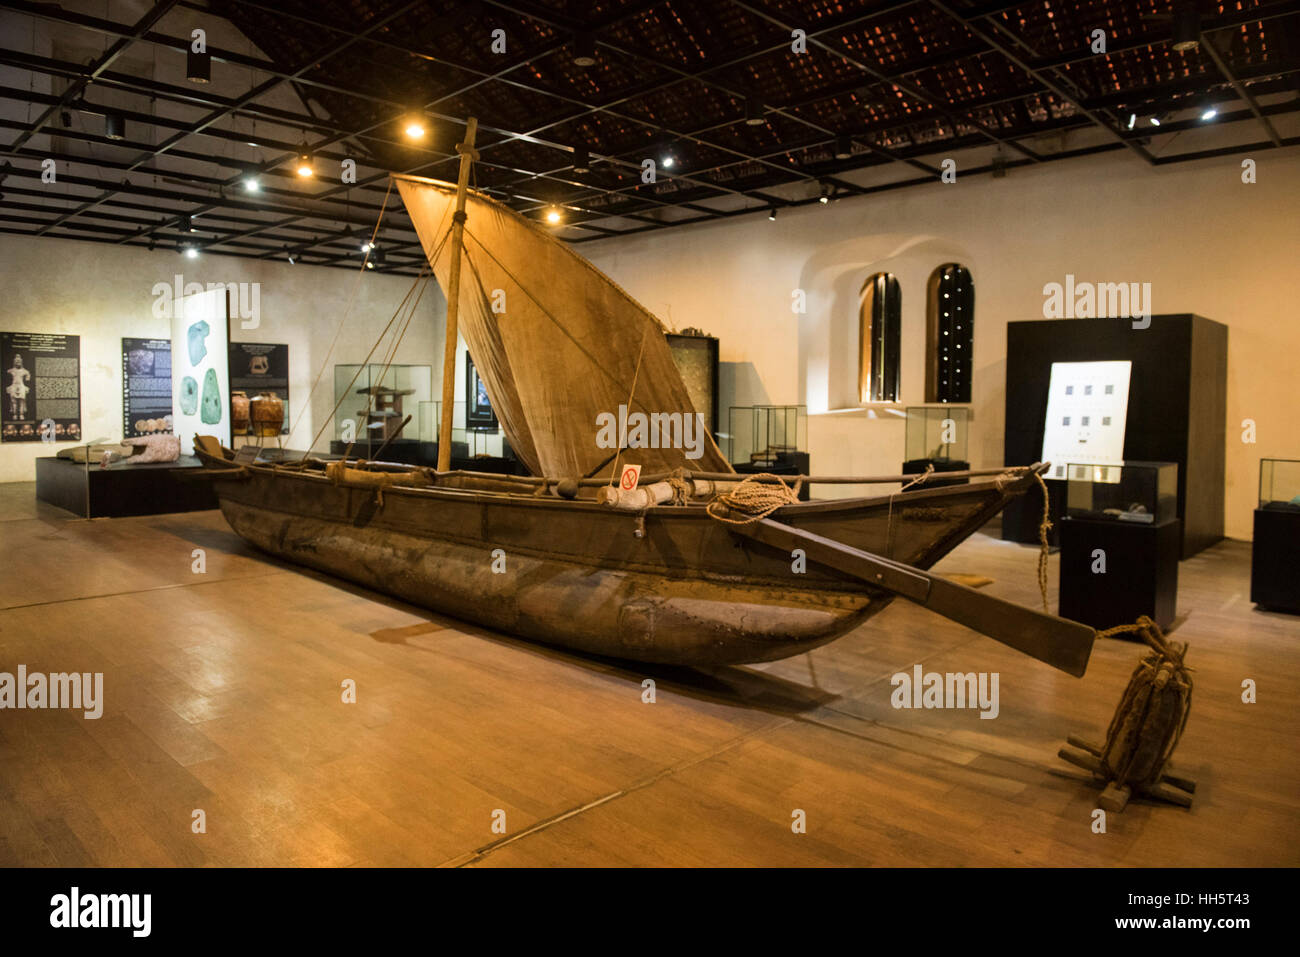 Displays in National Maritime Archaeology Museum housed in former Dutch warehouse, Galle Fort, Galle, Sri Lanka - Stock Image